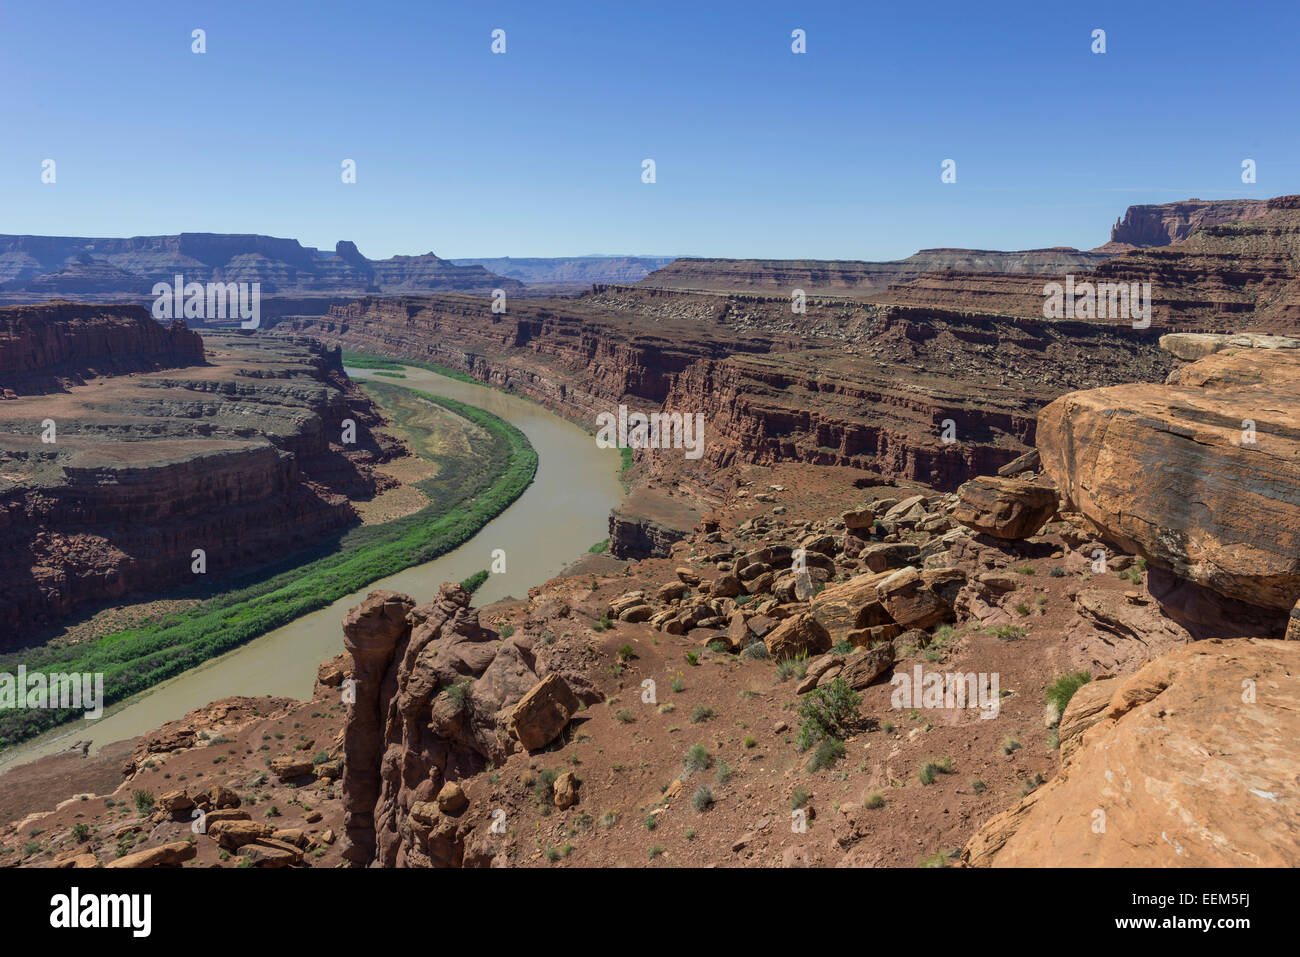 Gooseneck Overlook and the Colorado River, Island in the Sky, Canyonlands National Park, Moab, Utah, United States Stock Photo